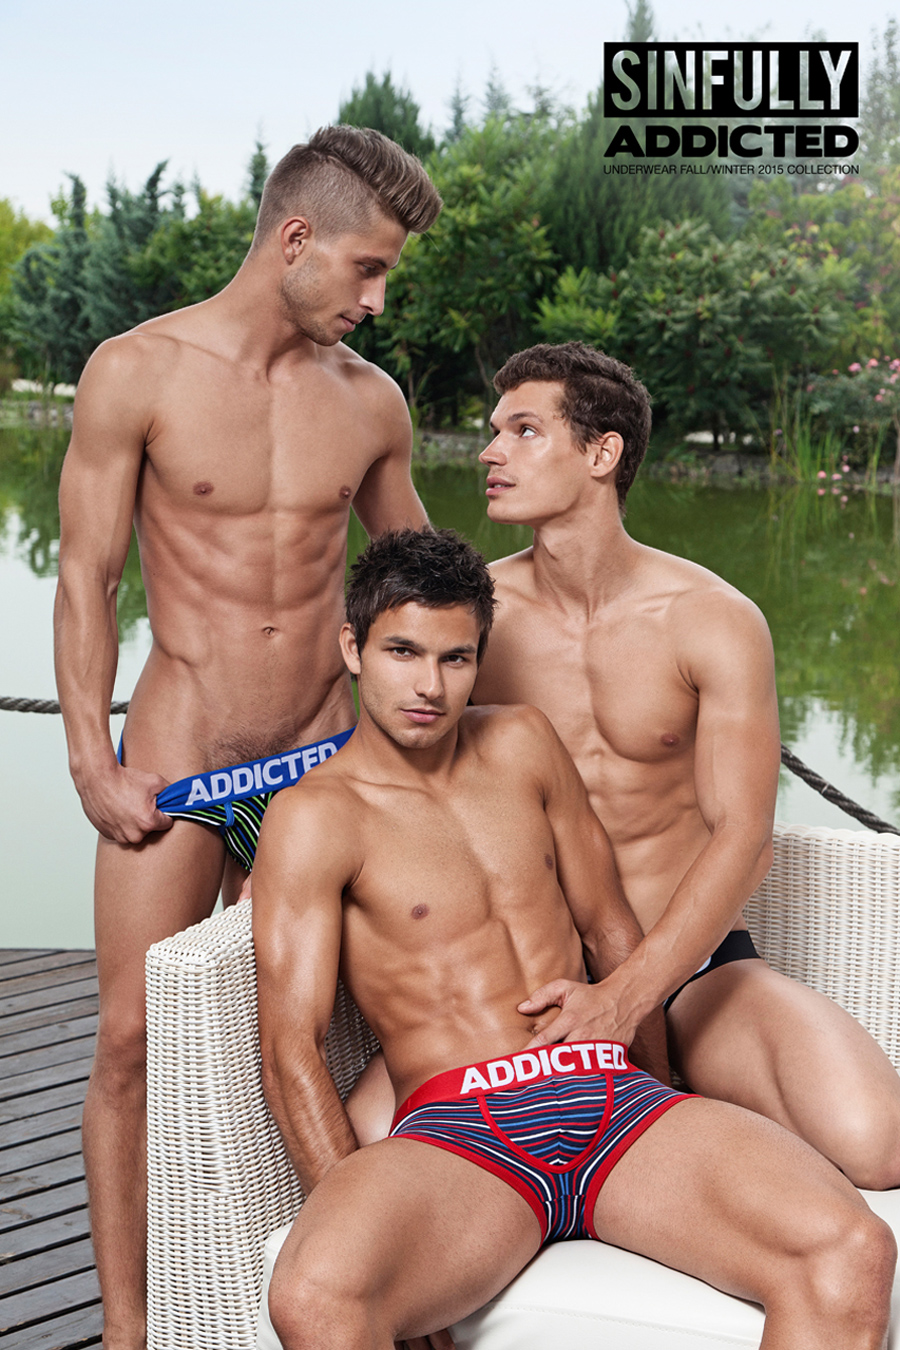 addicted-sinfully-underwear-01